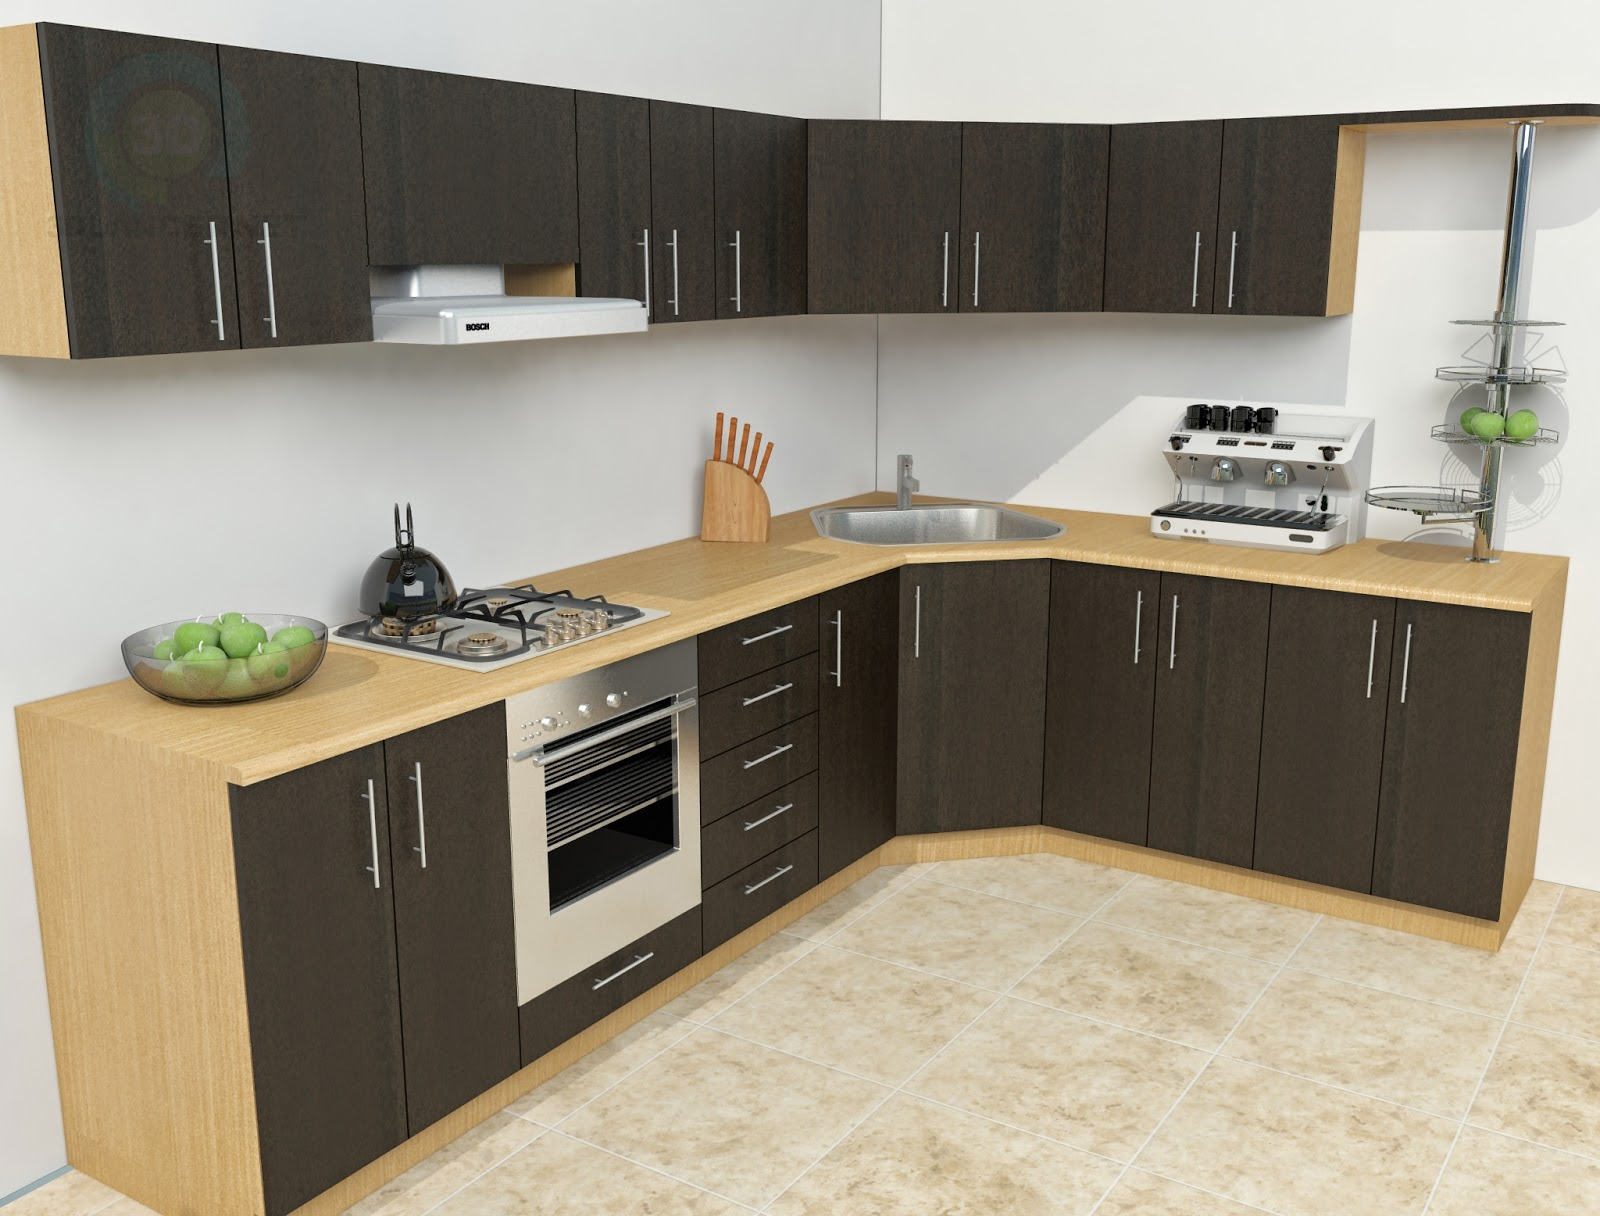 3d kitchen decorating ideas home designs for House kitchen model